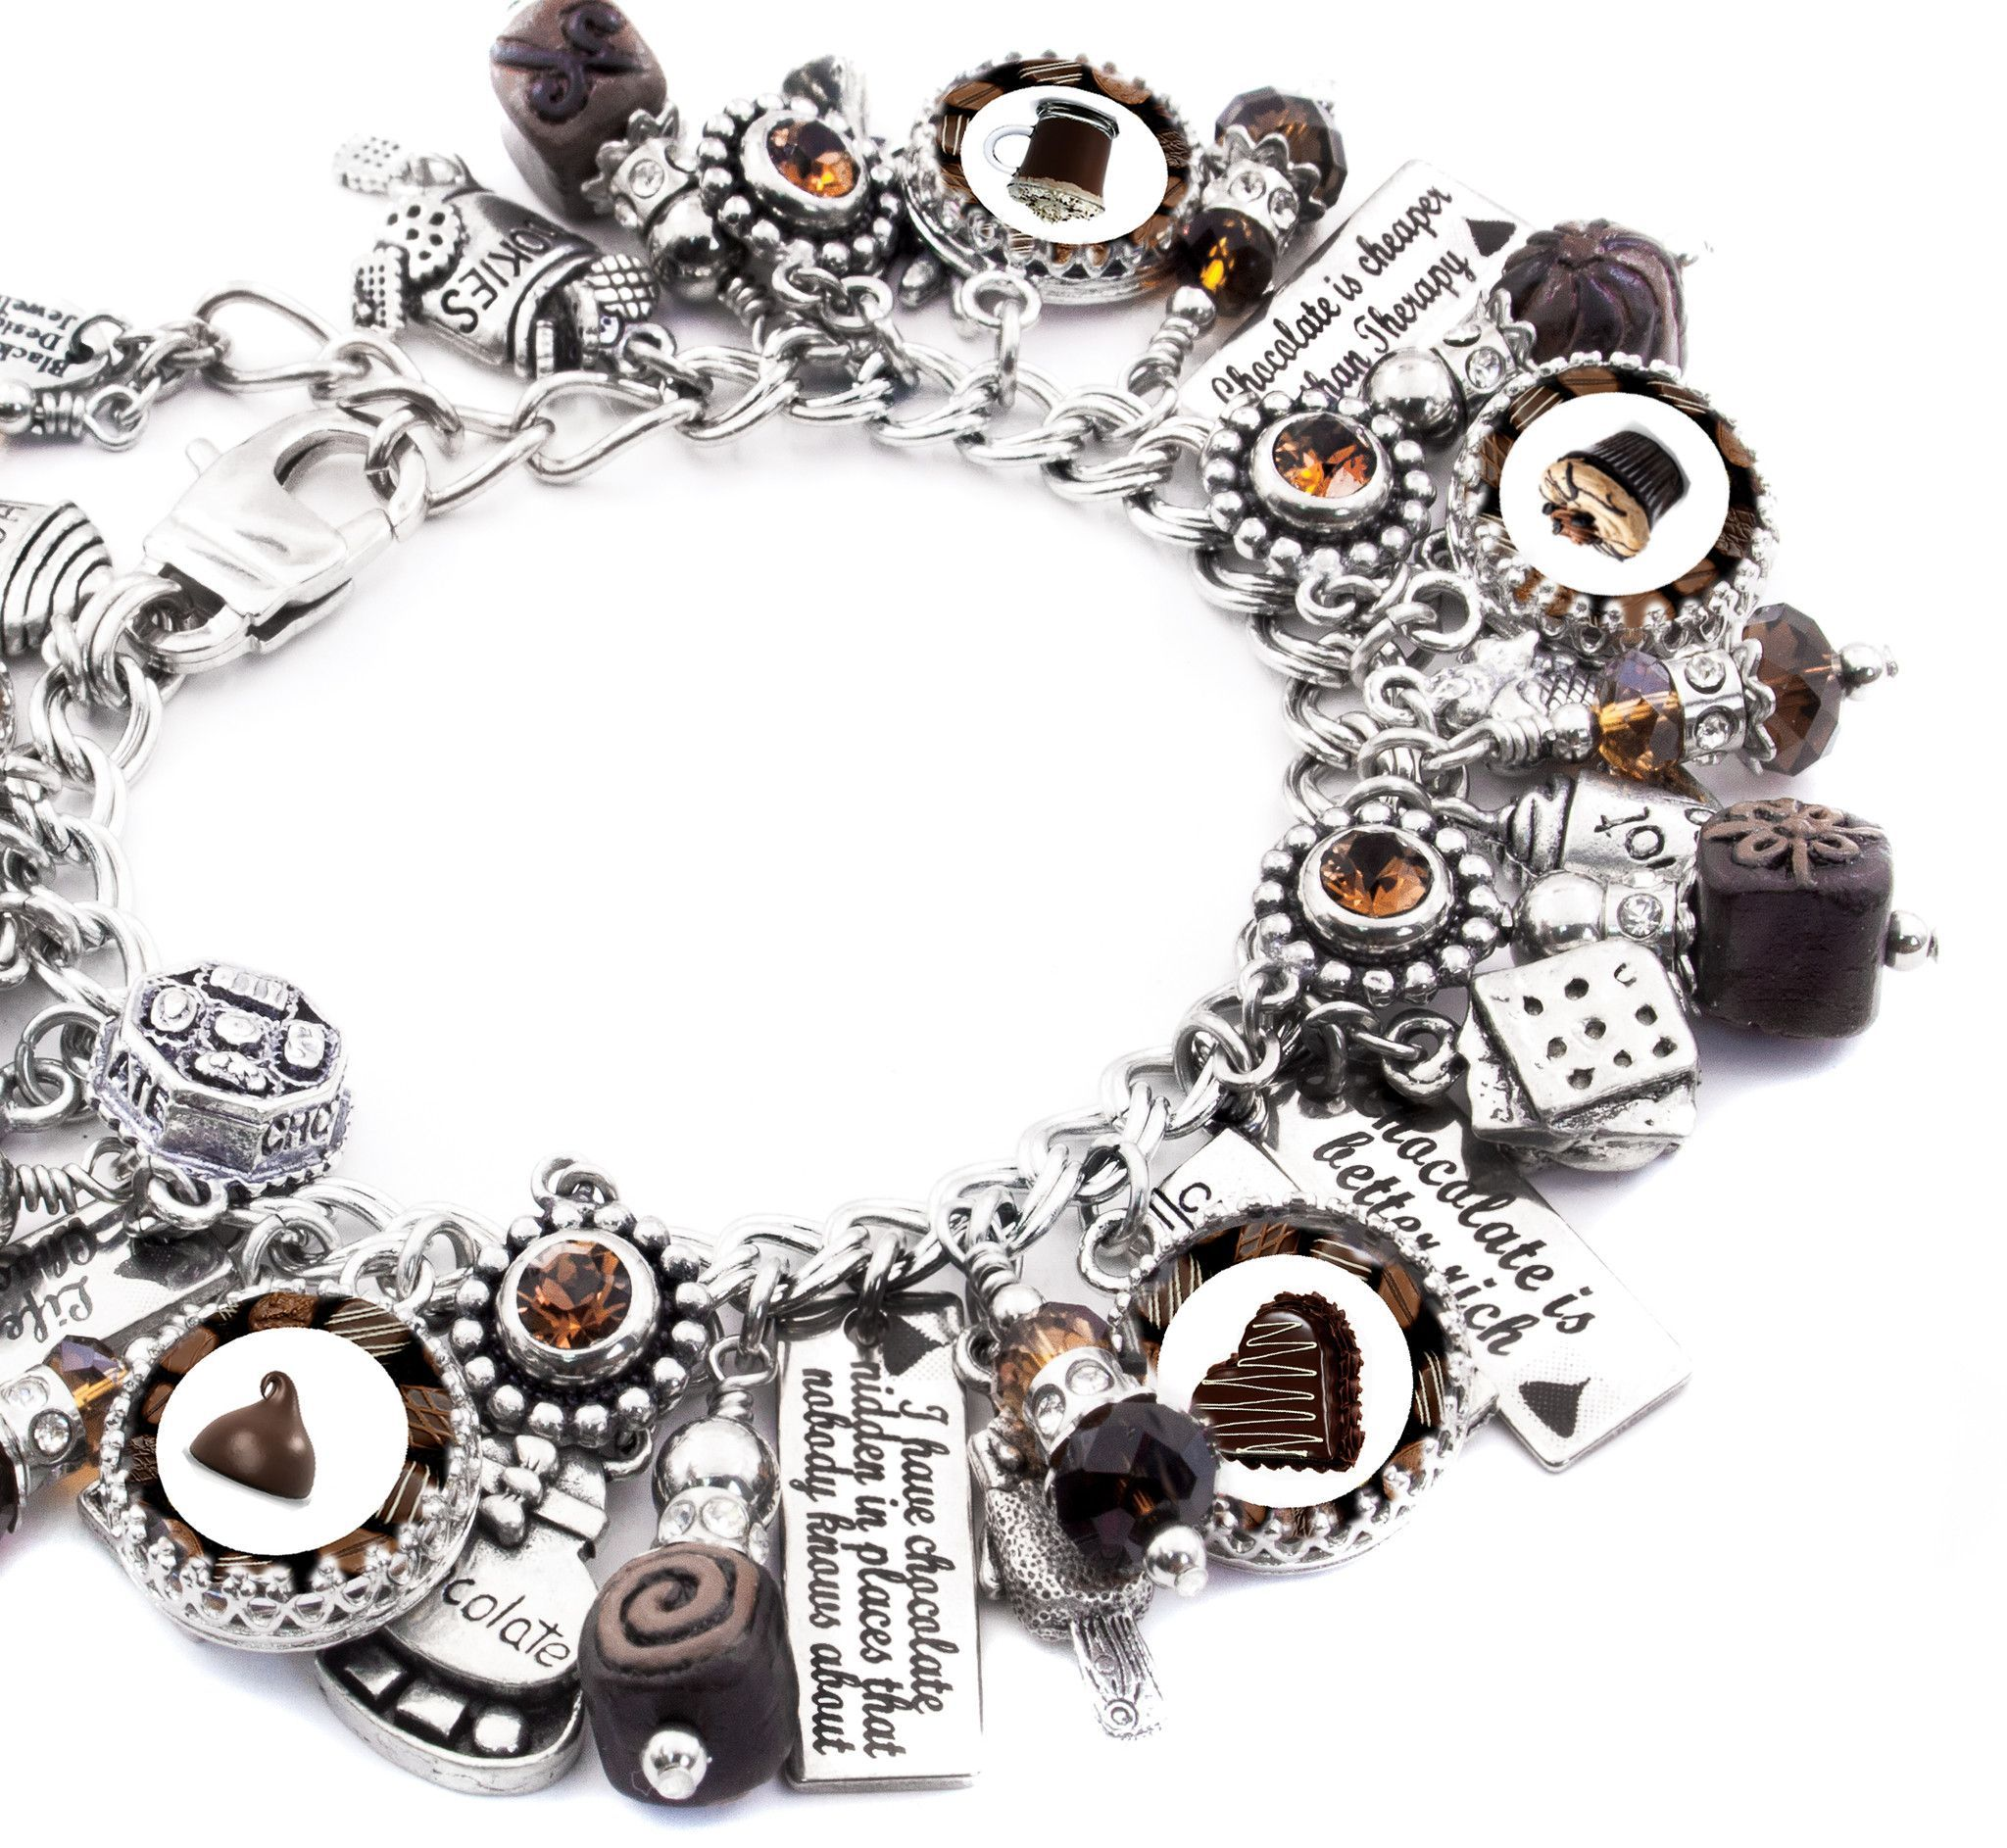 """My jewelry store features handmade jewelry, charm bracelets, necklaces, earrings, this wonderful """"Chocolate is Better Rich"""" charm bracelet and over 400 more unique jewelry designs. My jewelry is creat"""